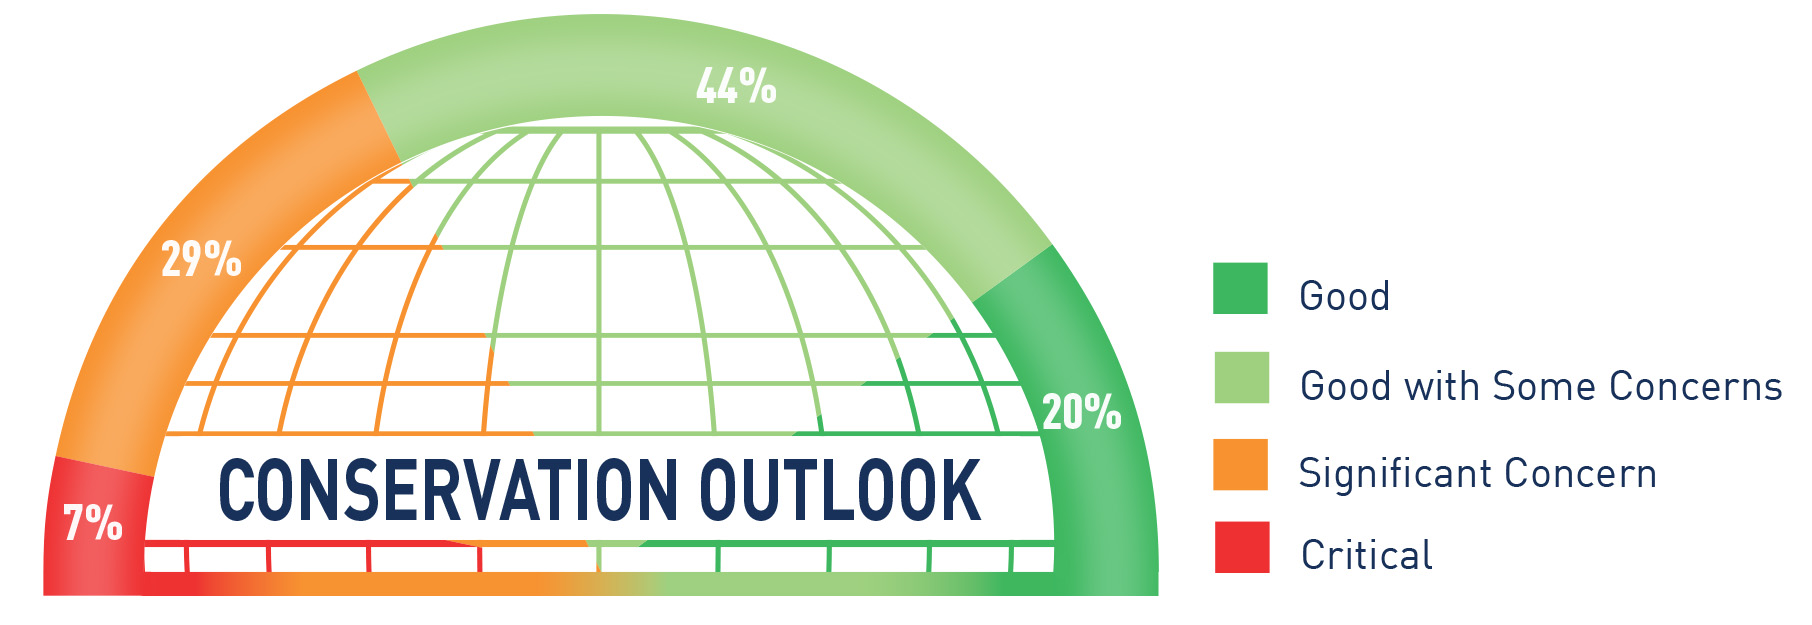 Global World Heritage Outlook 2 results